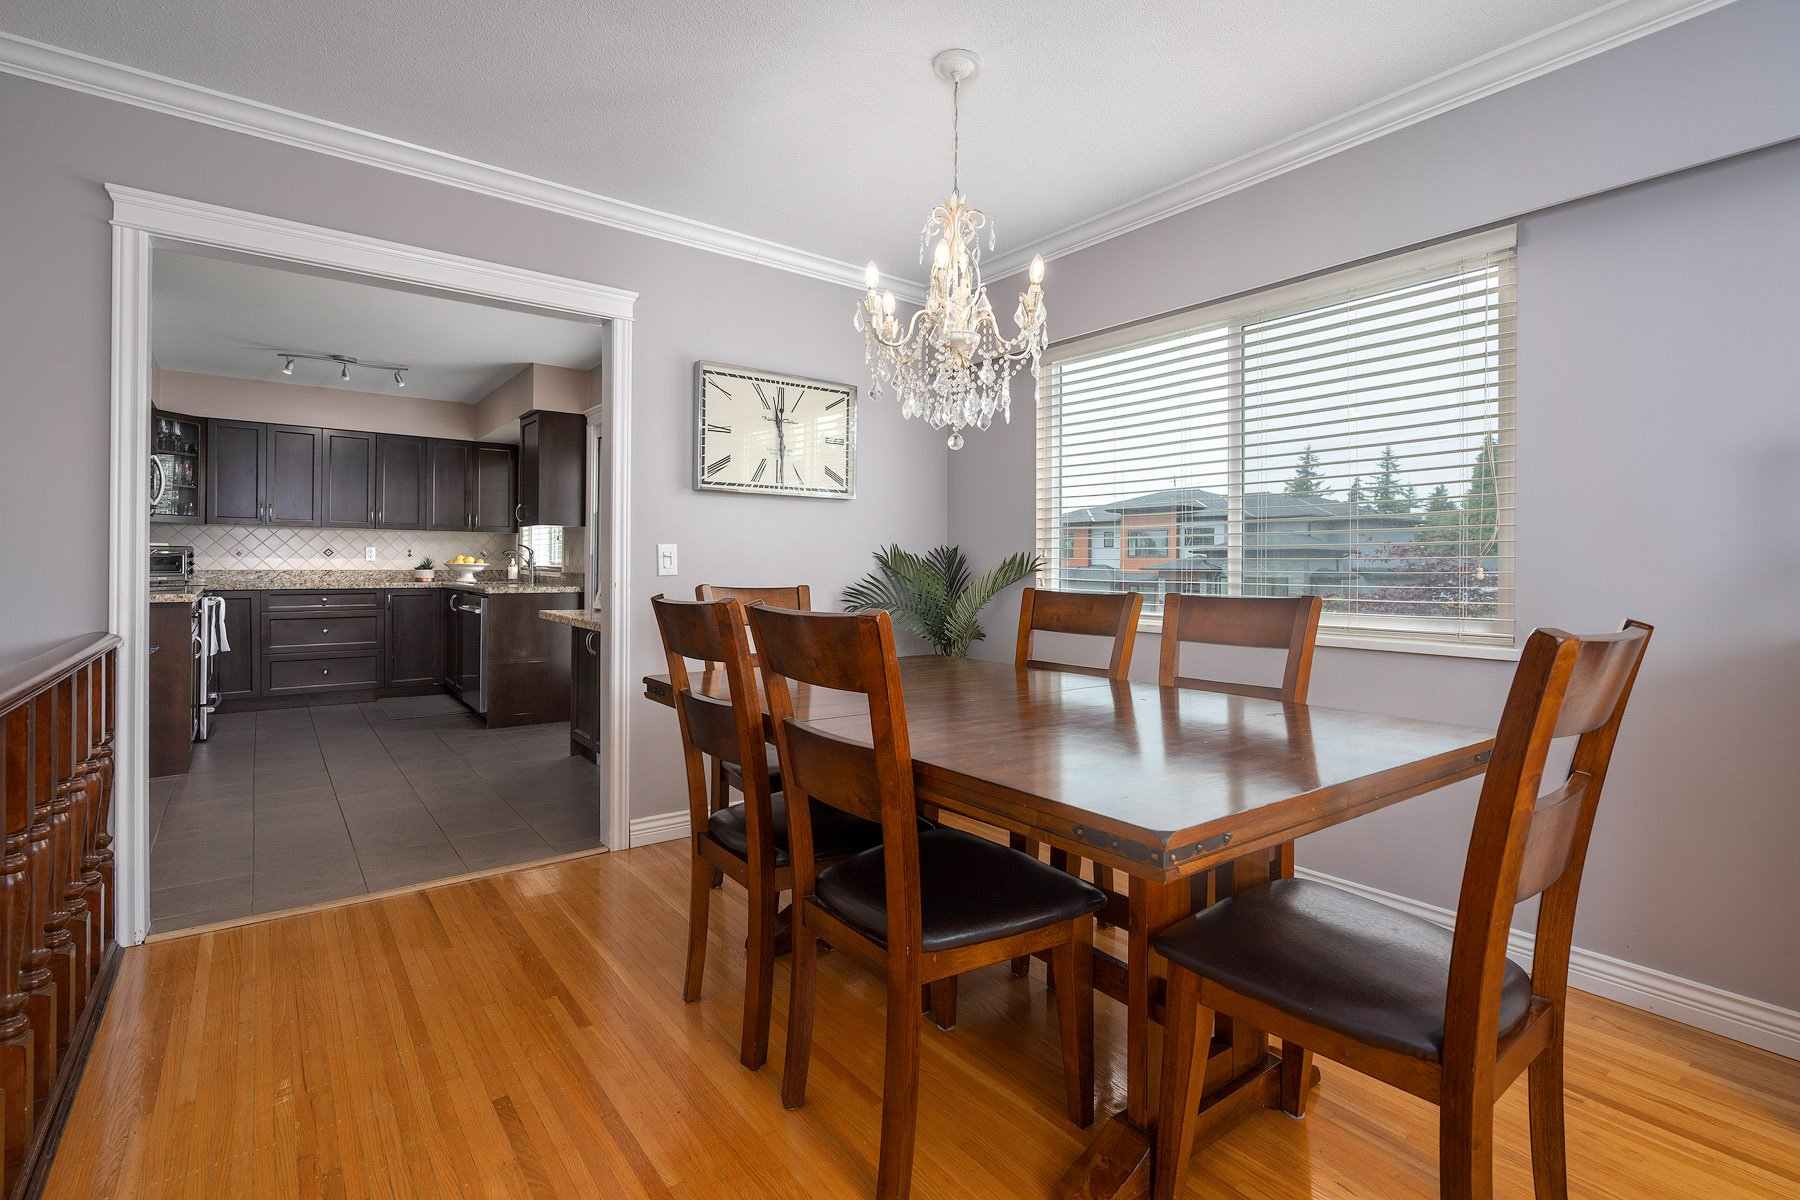 Photo 6: Photos: 423 MONTGOMERY Street in Coquitlam: Central Coquitlam House for sale : MLS®# R2380693